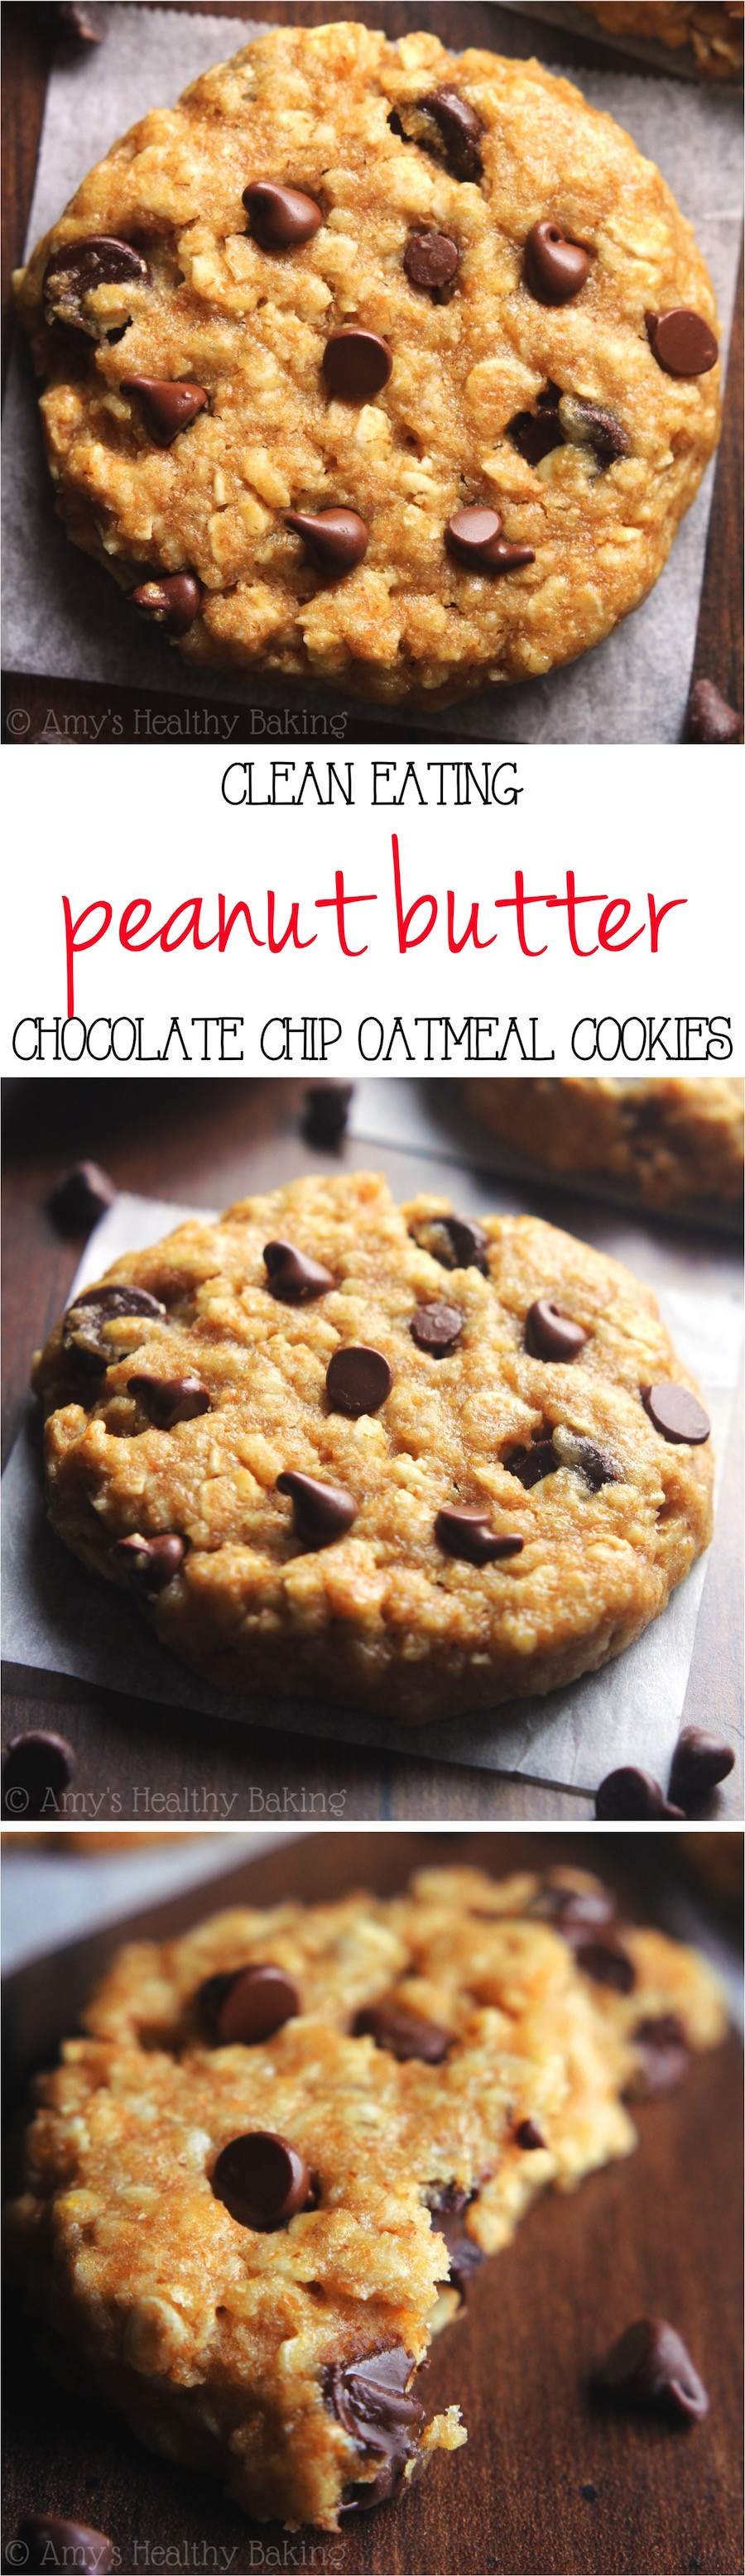 Healthy Oatmeal Peanut Butter Cookies  healthy oatmeal peanut butter chocolate chip cookies recipe